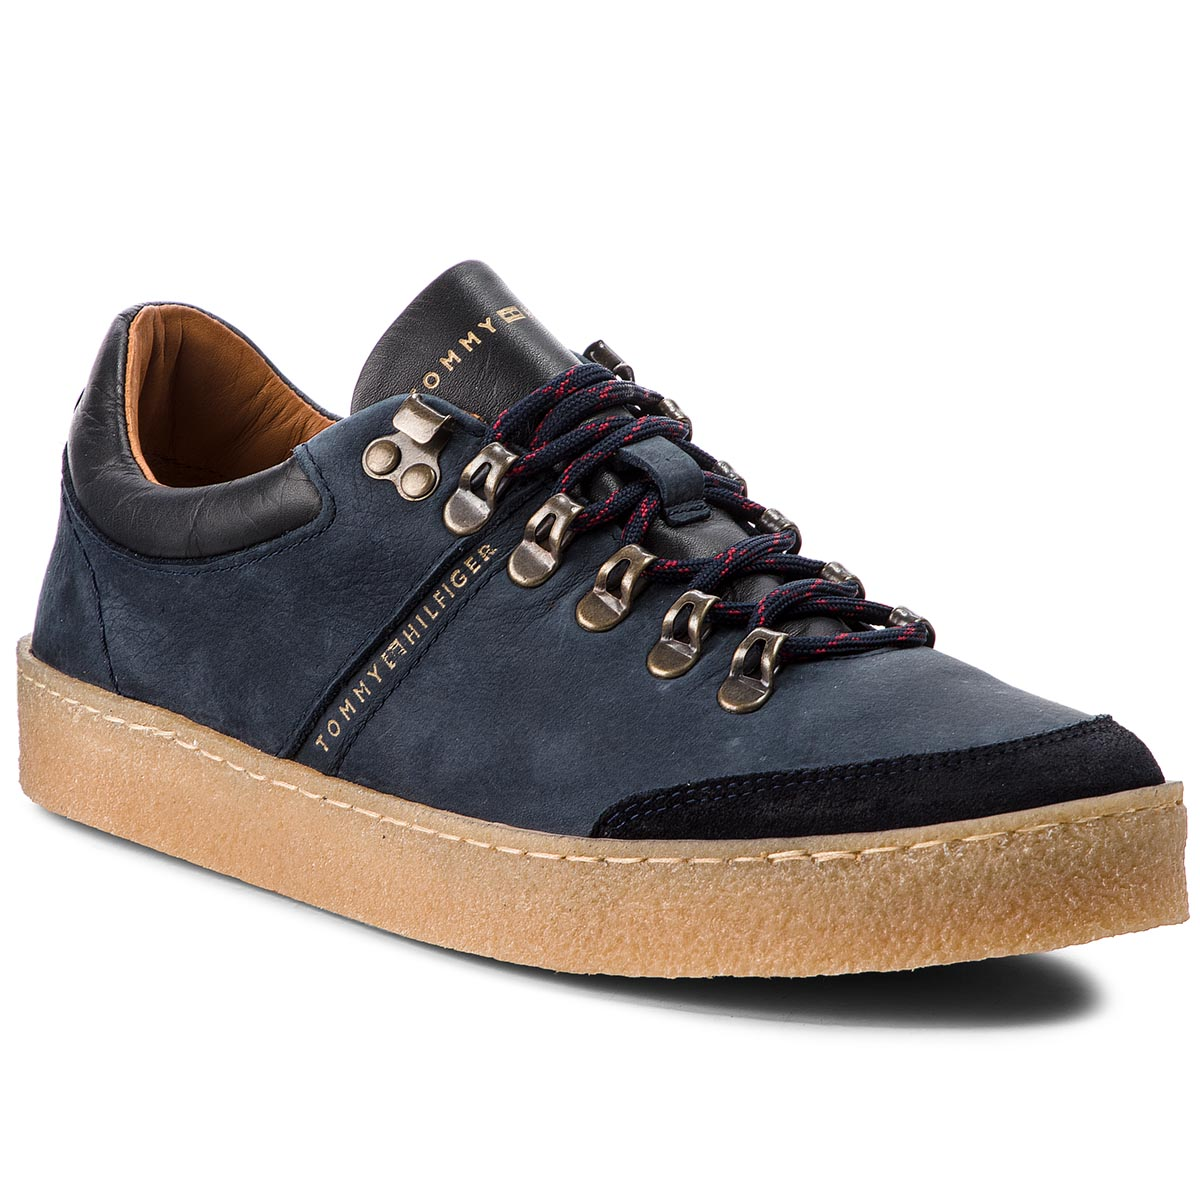 Laisvalaikio batai TOMMY HILFIGER - Crepe Outsole Hiking FM0FM01676 Midnight 403